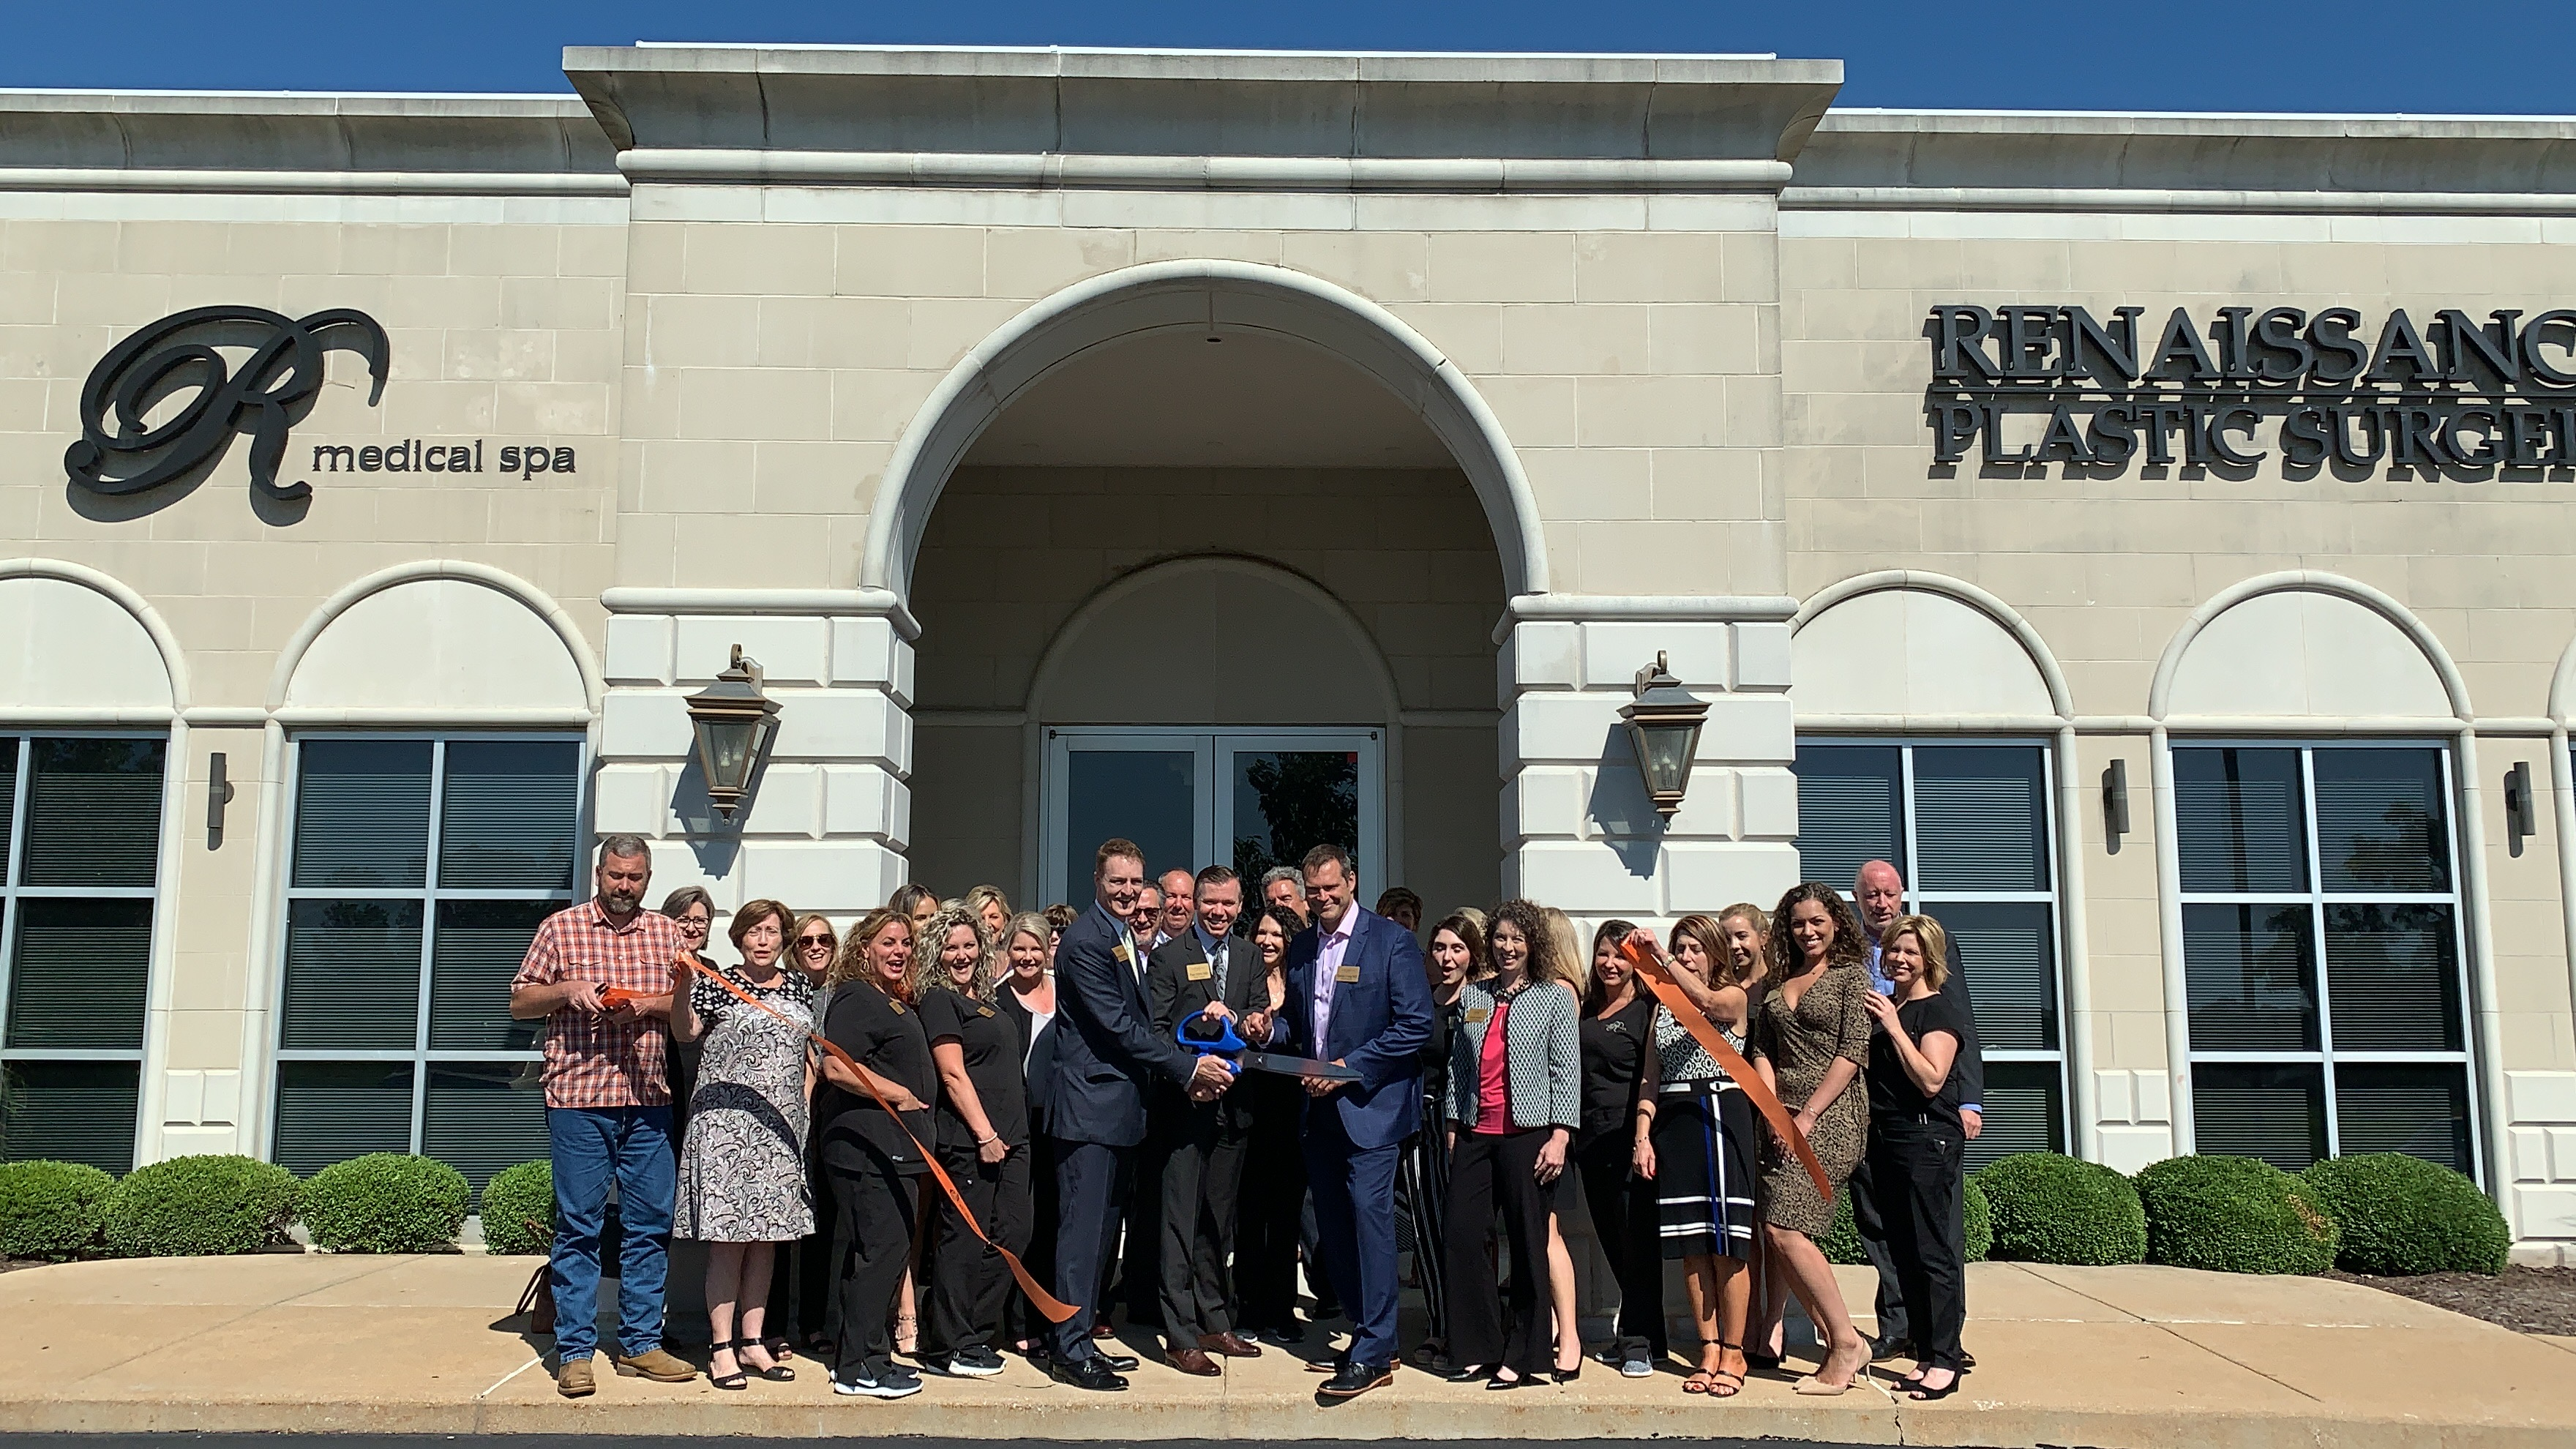 Renaissance Plastic Surgery Celebrates 20th anniversary with Ribbon Cutting